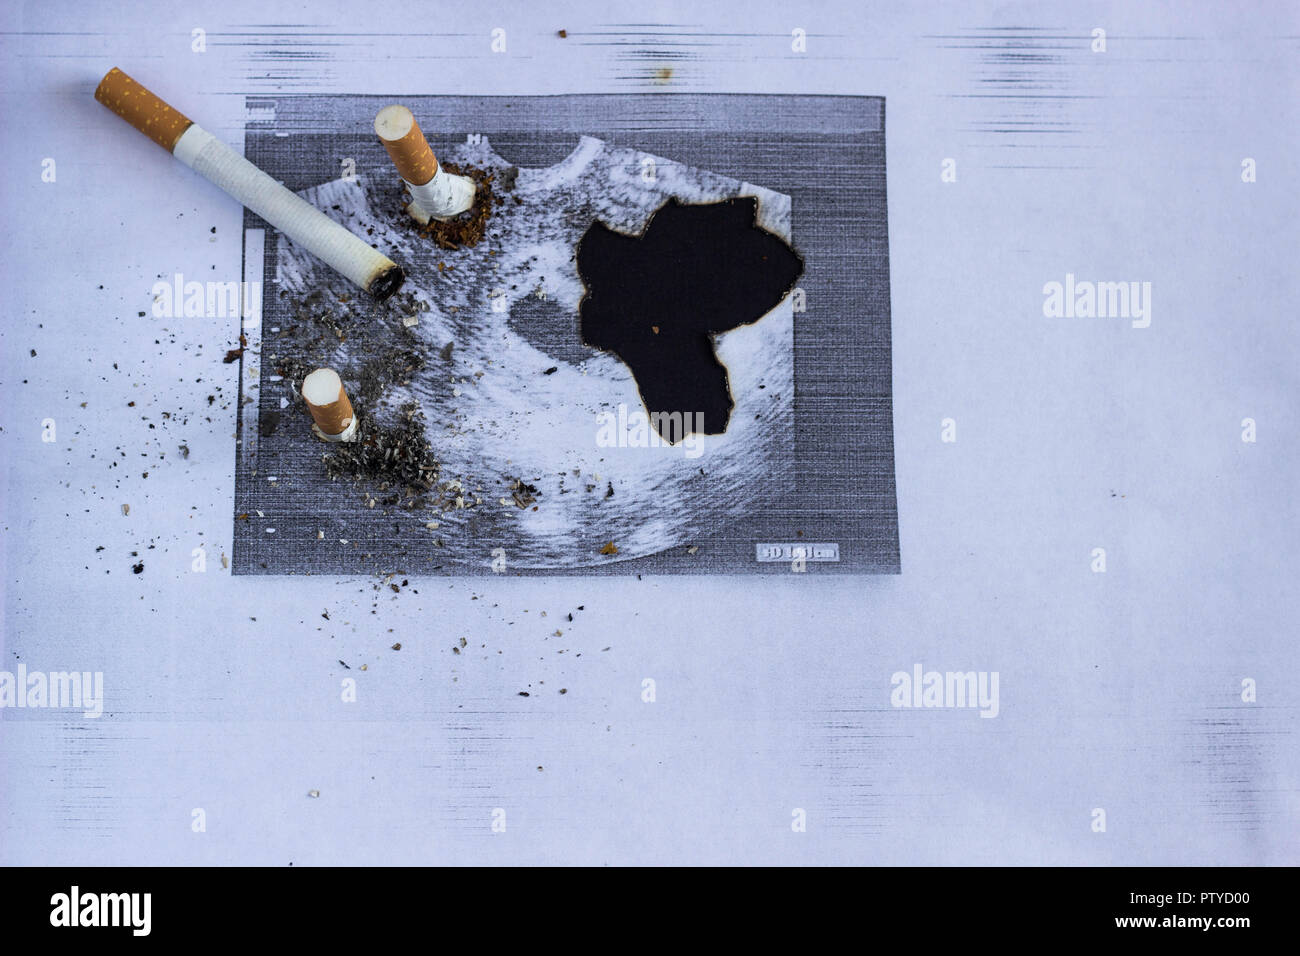 Cigarette cigarette stubs extinguished about a shot of pregnancy, pregnancy and smoking, cigarette and gestation - Stock Image